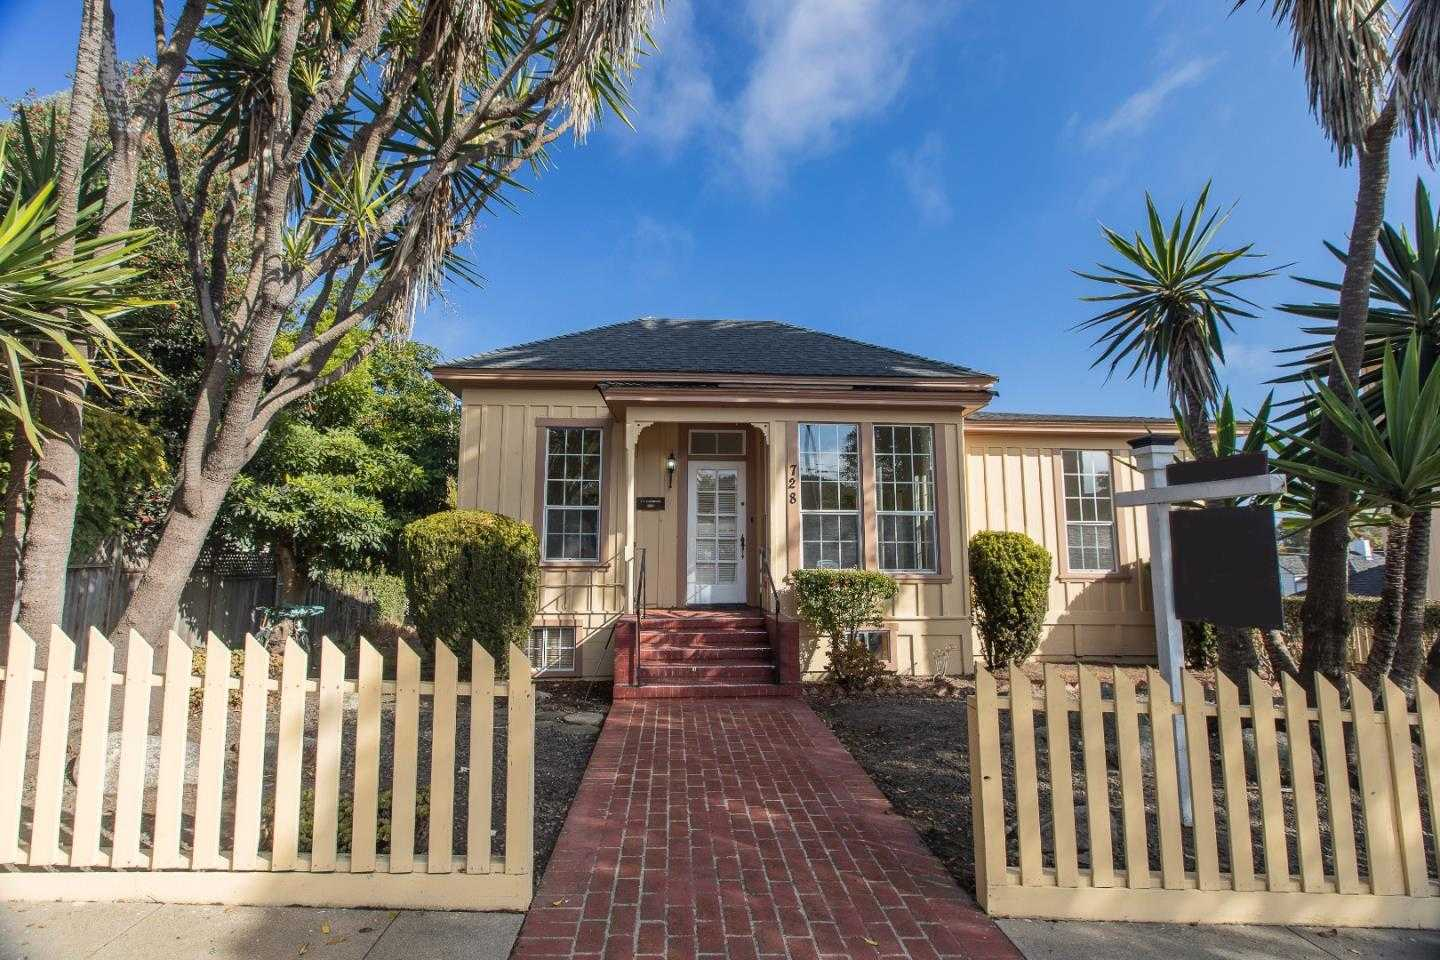 $1,375,000 - 3Br/2Ba -  for Sale in Pacific Grove